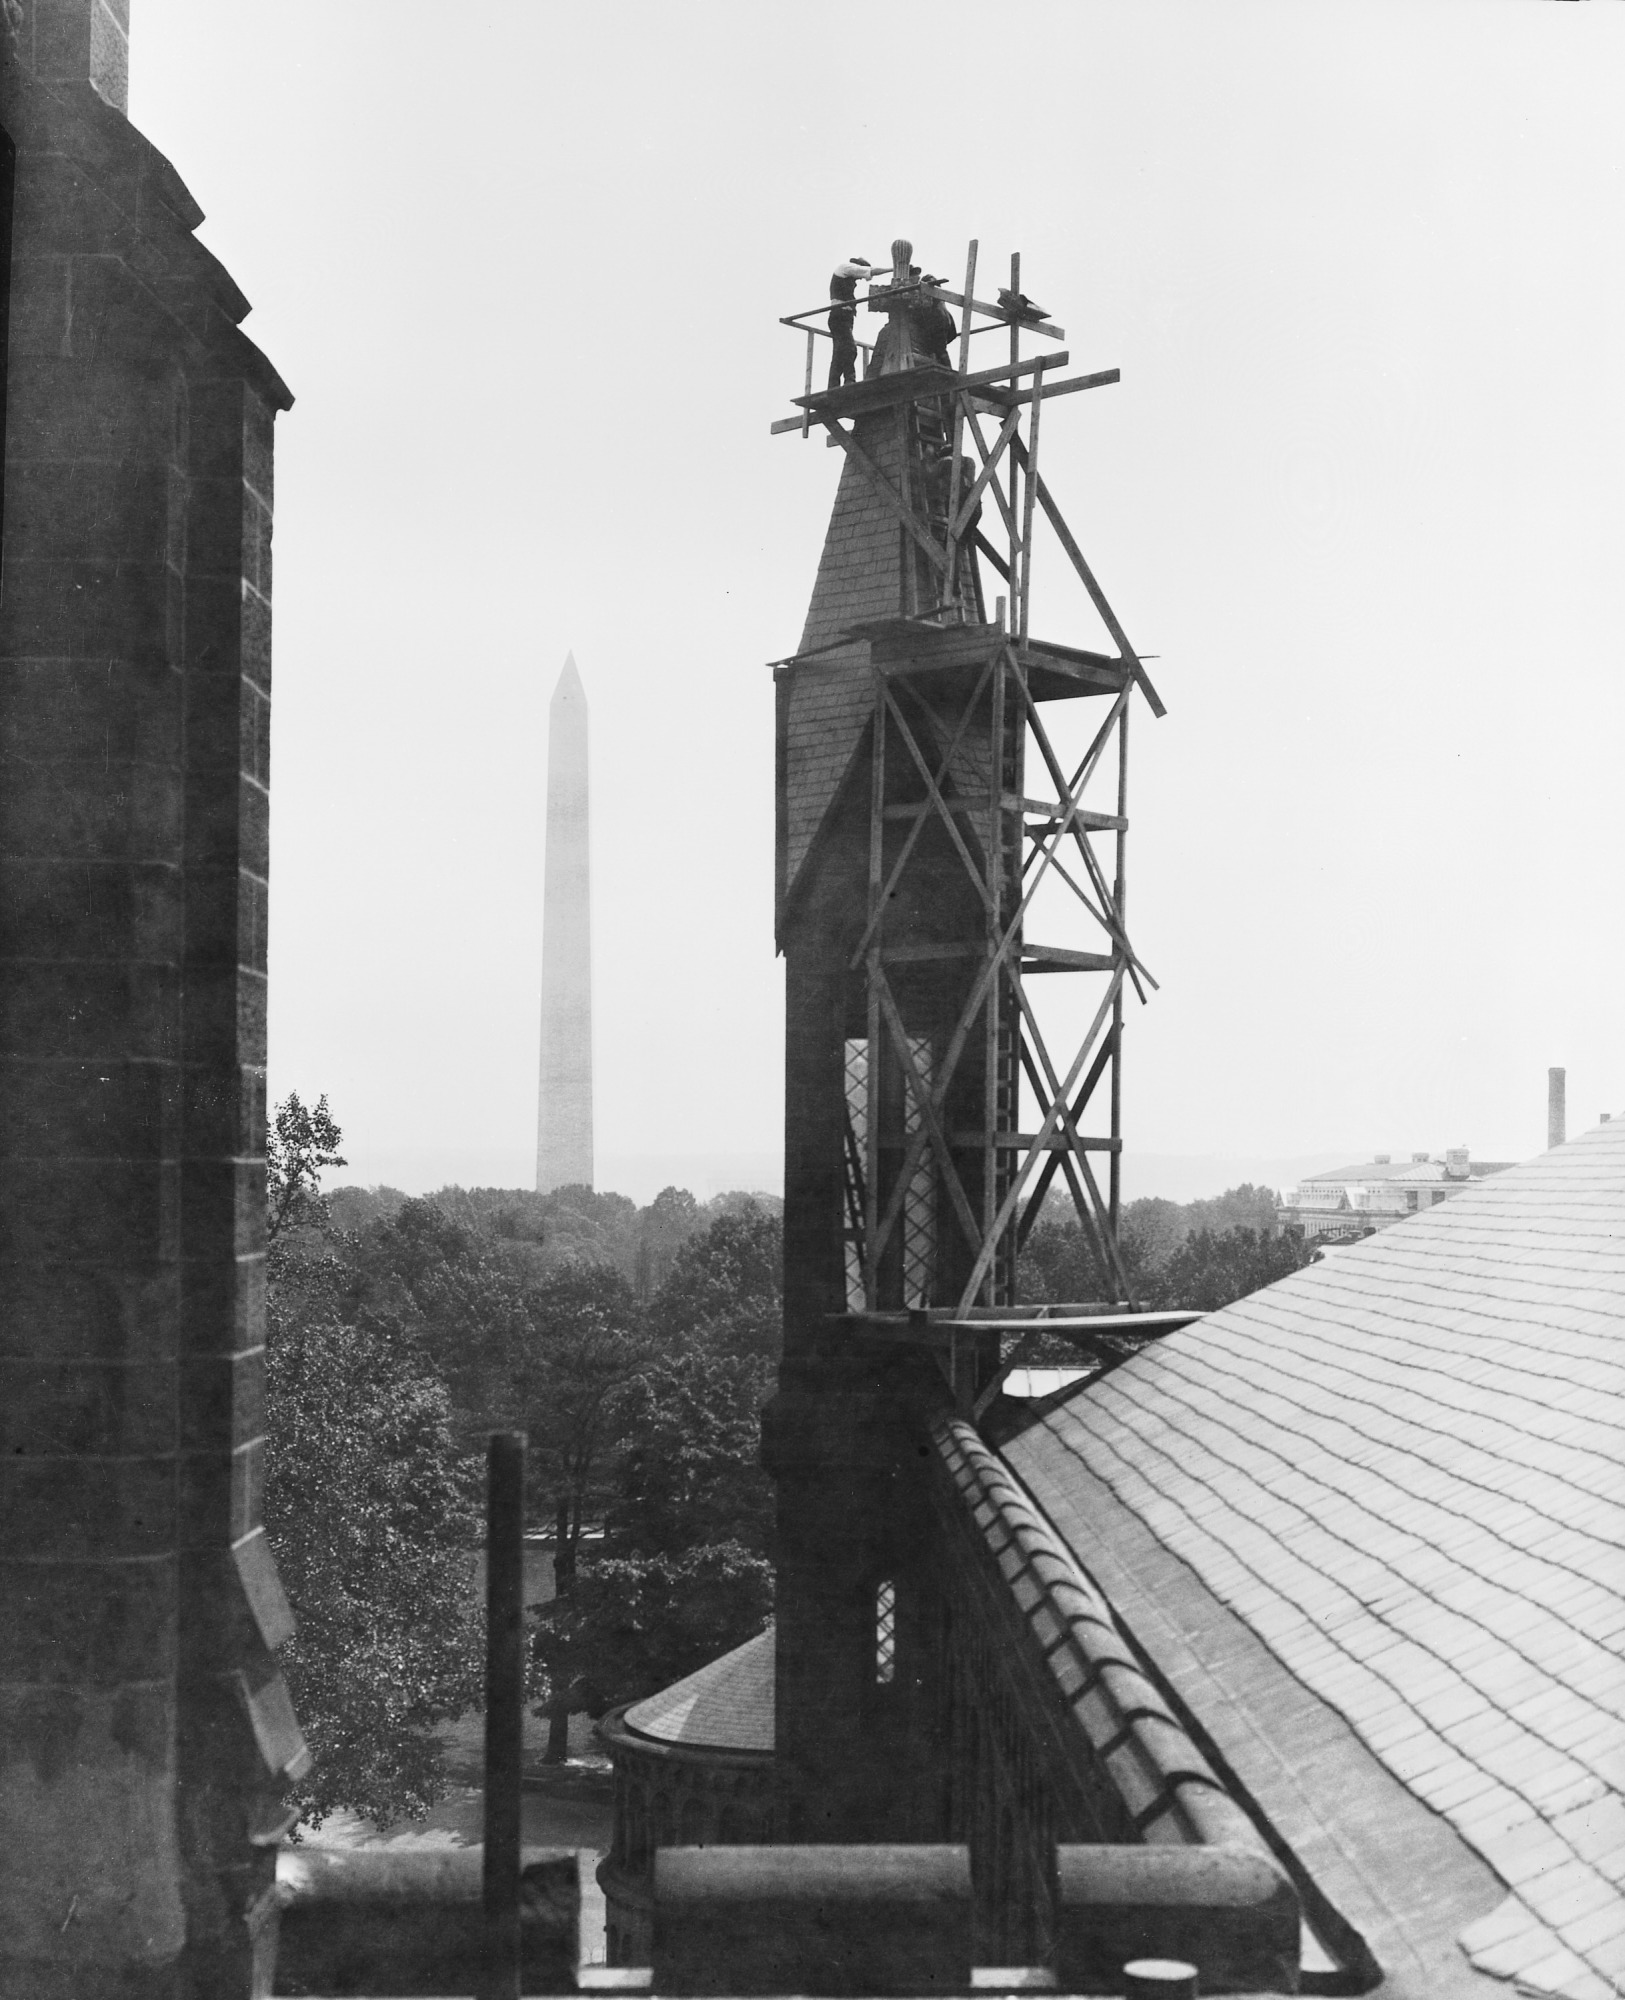 Repairing the Smithsonian Institution Building Tower